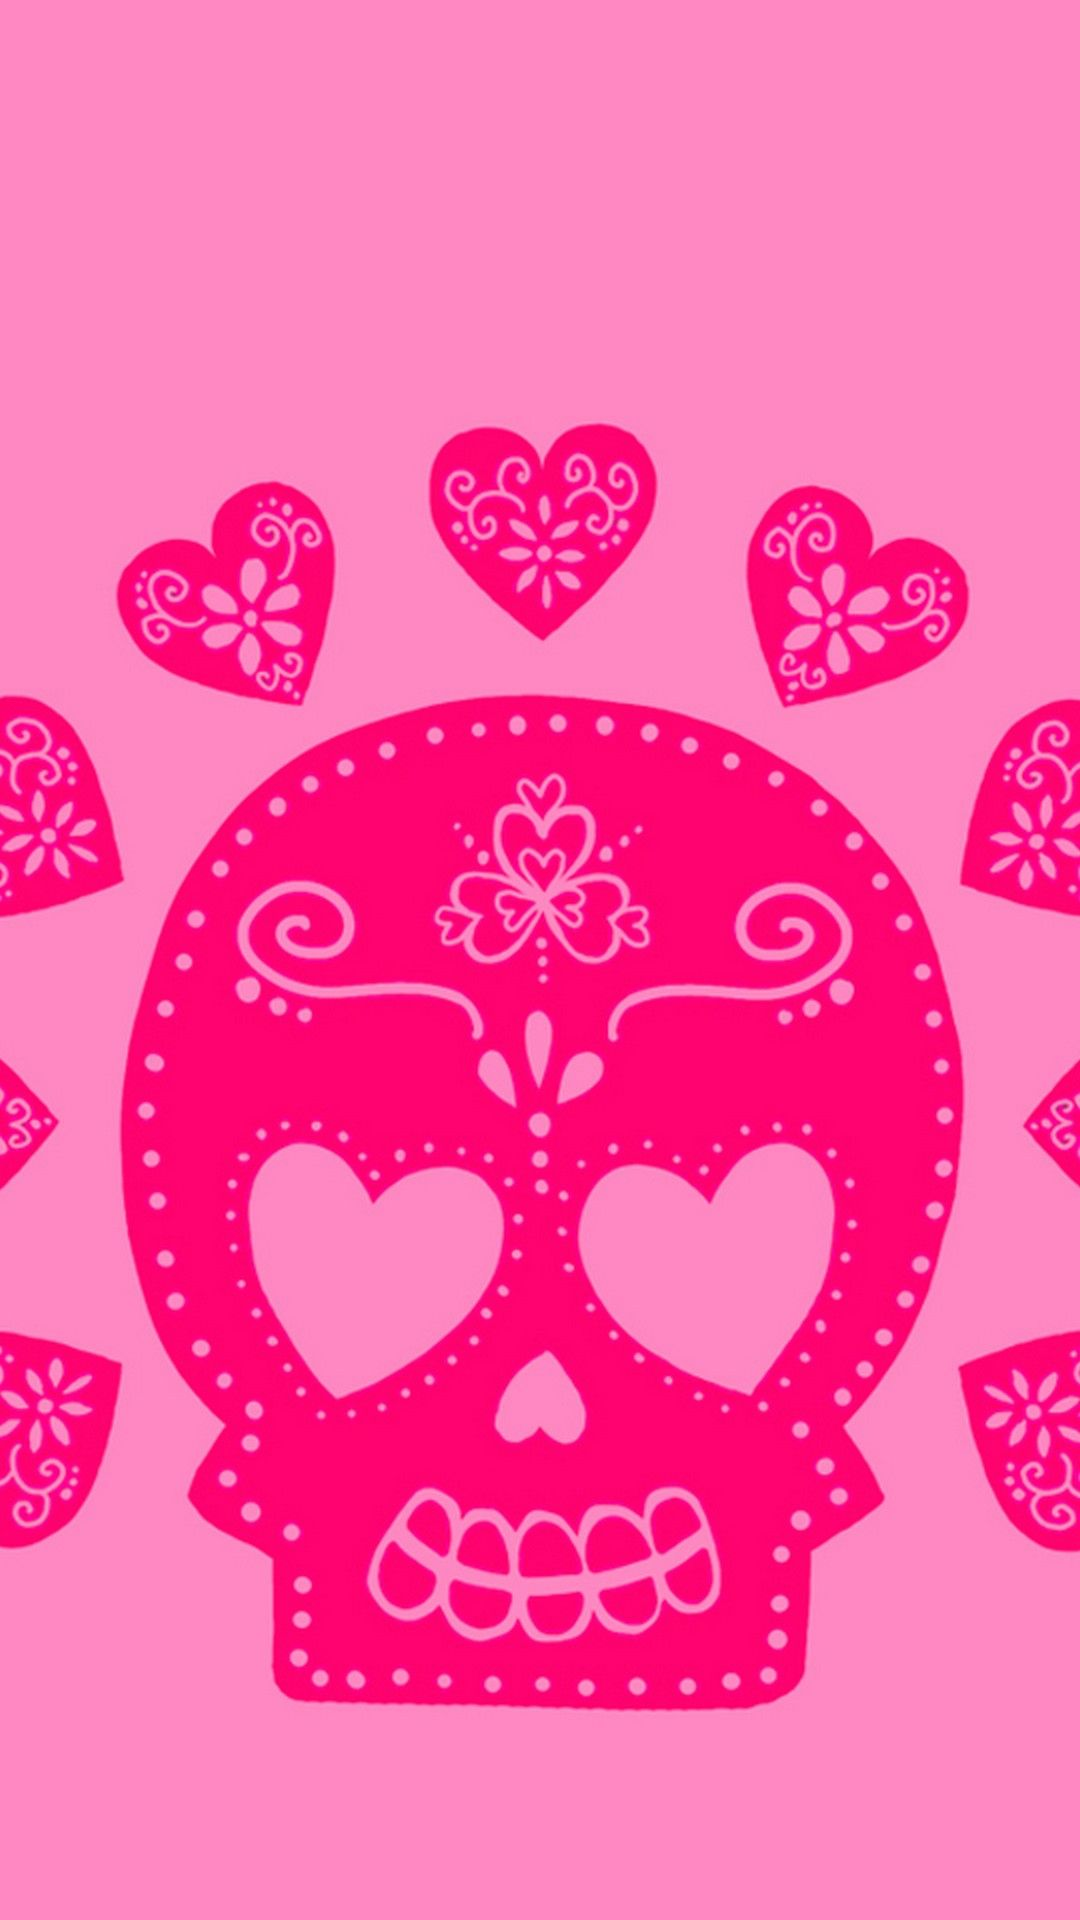 Skull Cute Girly Wallpaper Android Best Hd Wallpapers